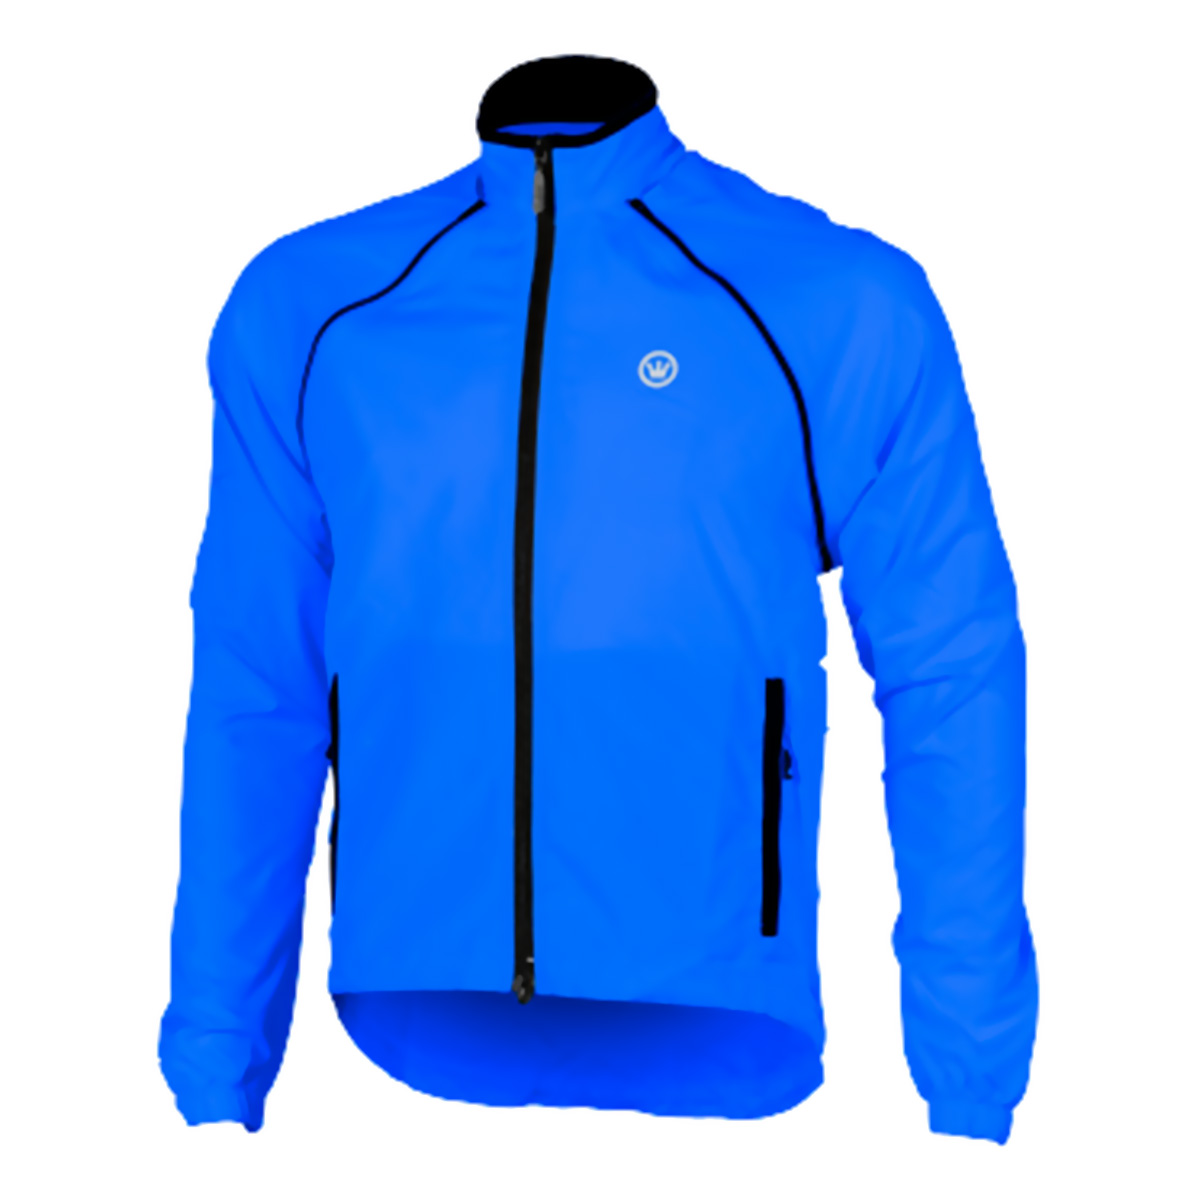 Canari Cyclewear 2015 Men's Eclipse II Cycling Jacket 1760 by Canari Cyclewear